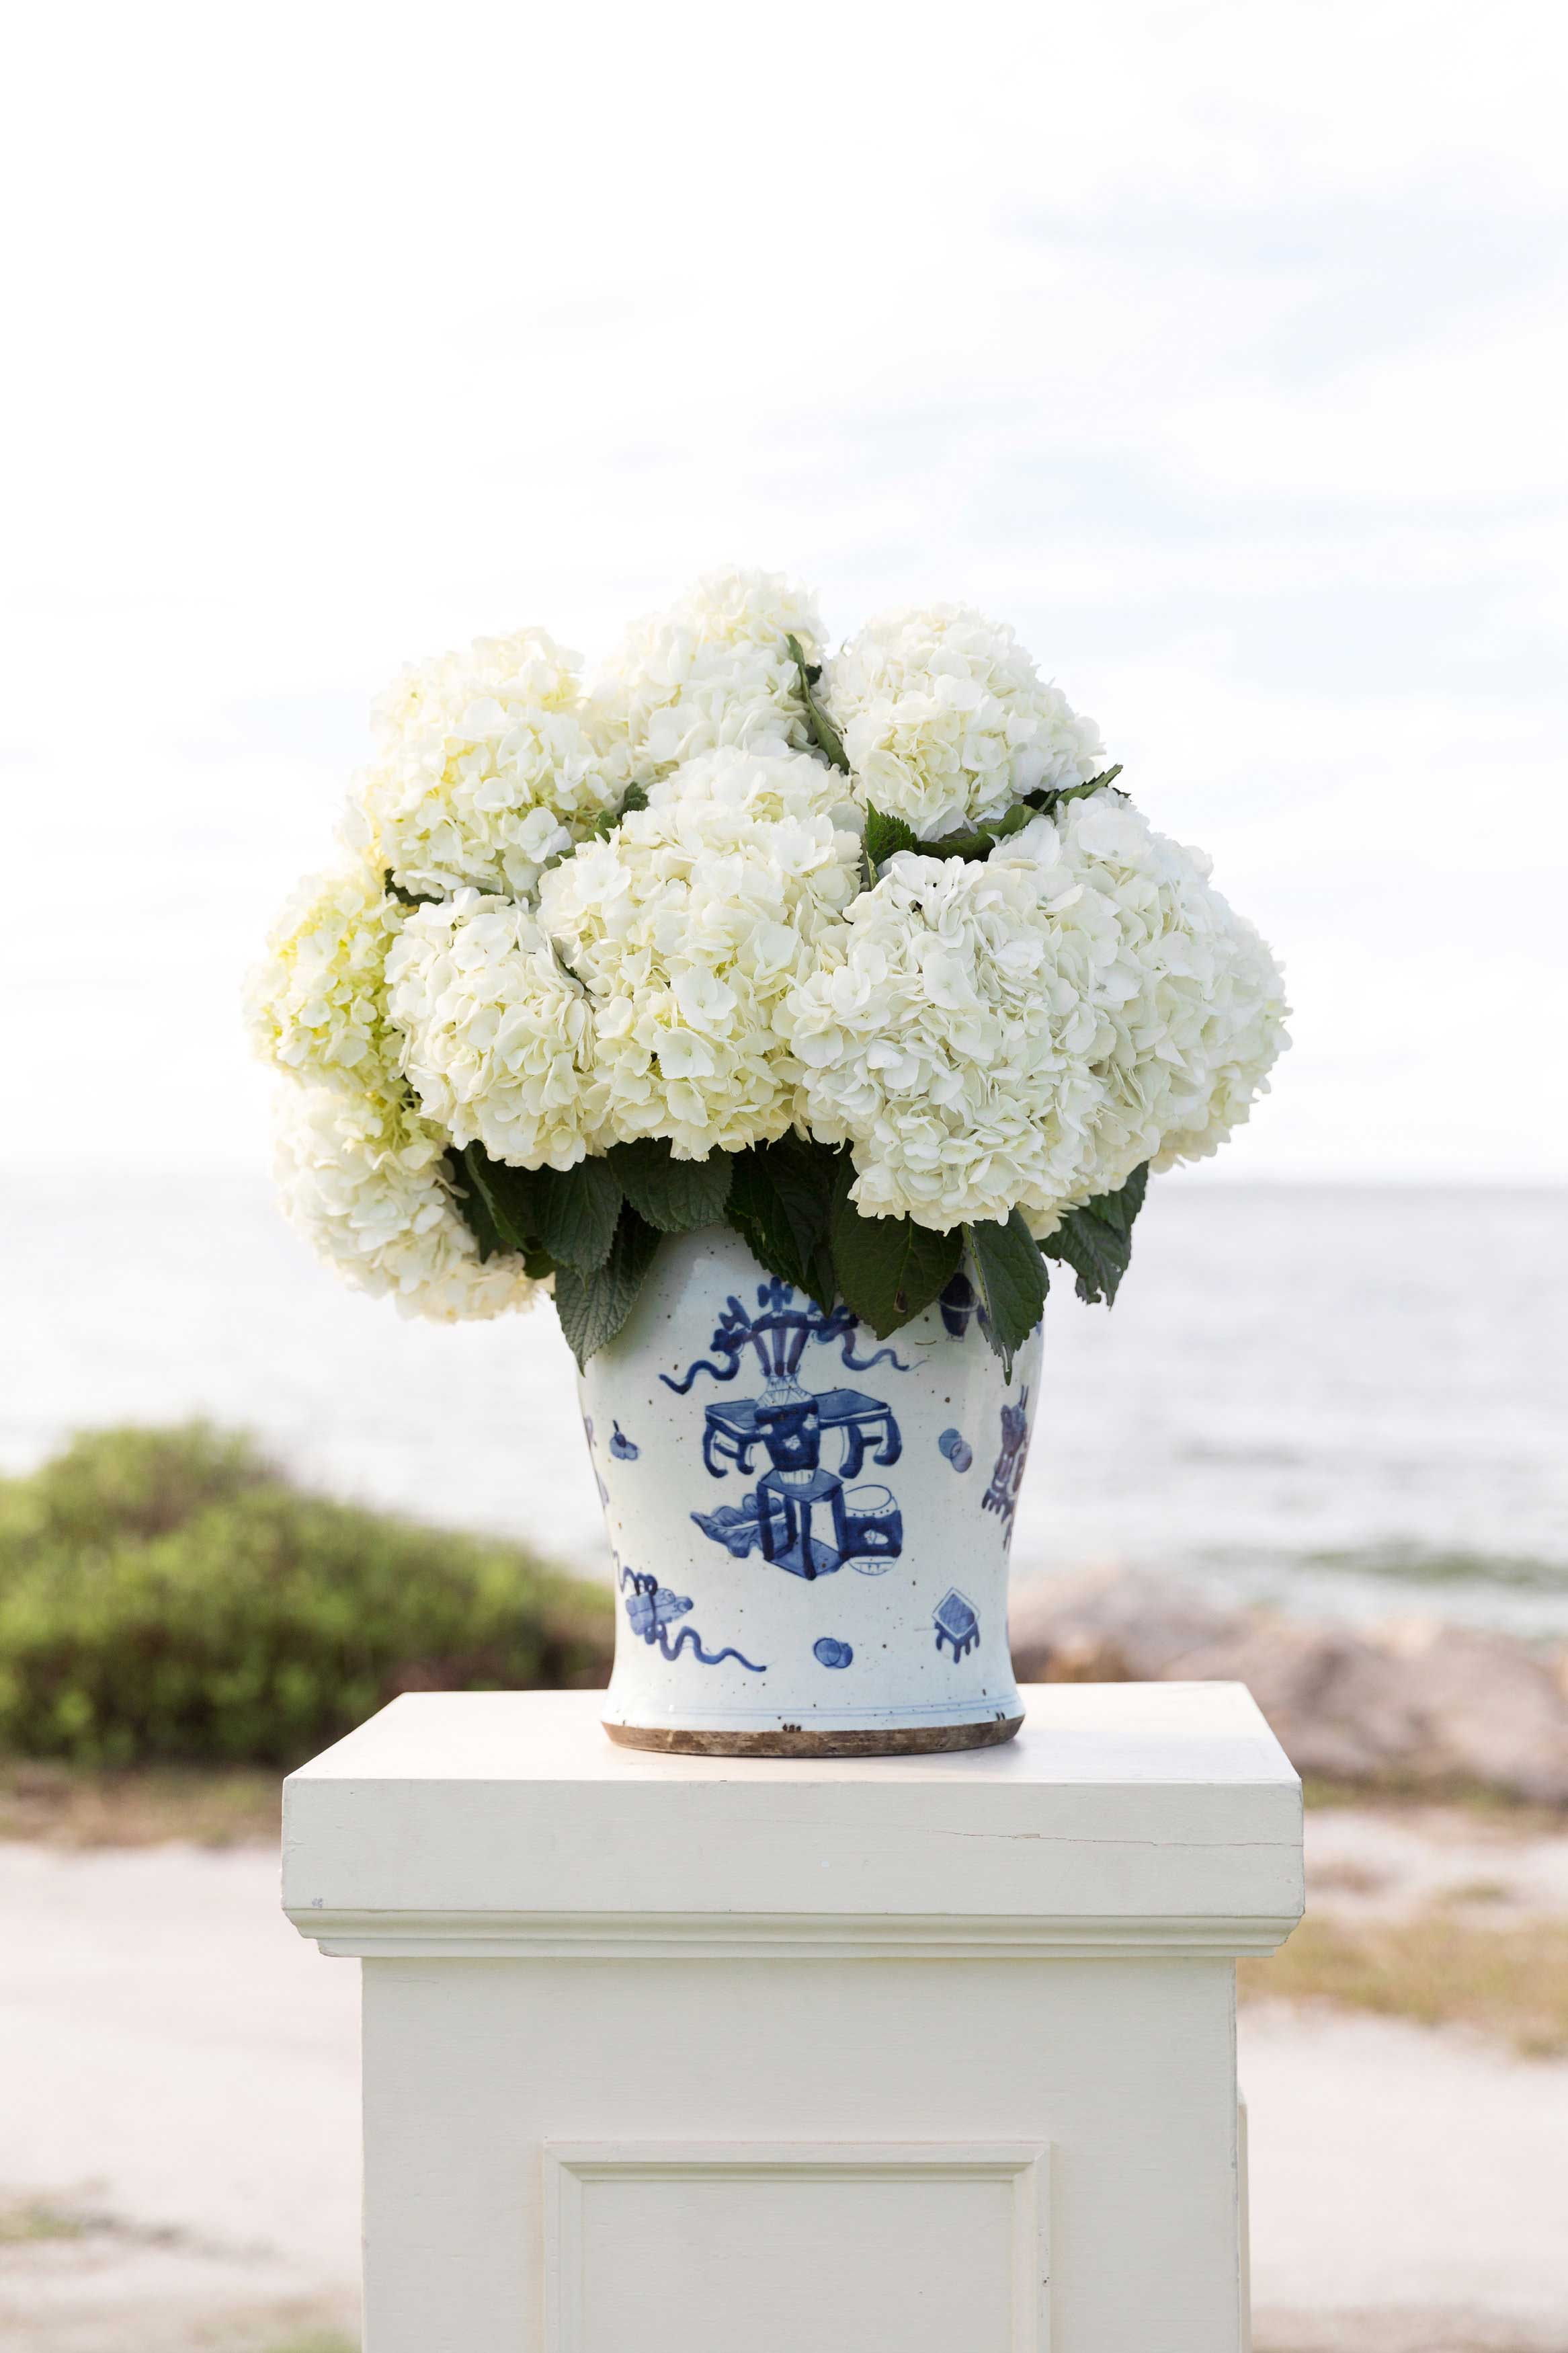 Wedding ceremony by water blue and white vase ginger jar with white flowers